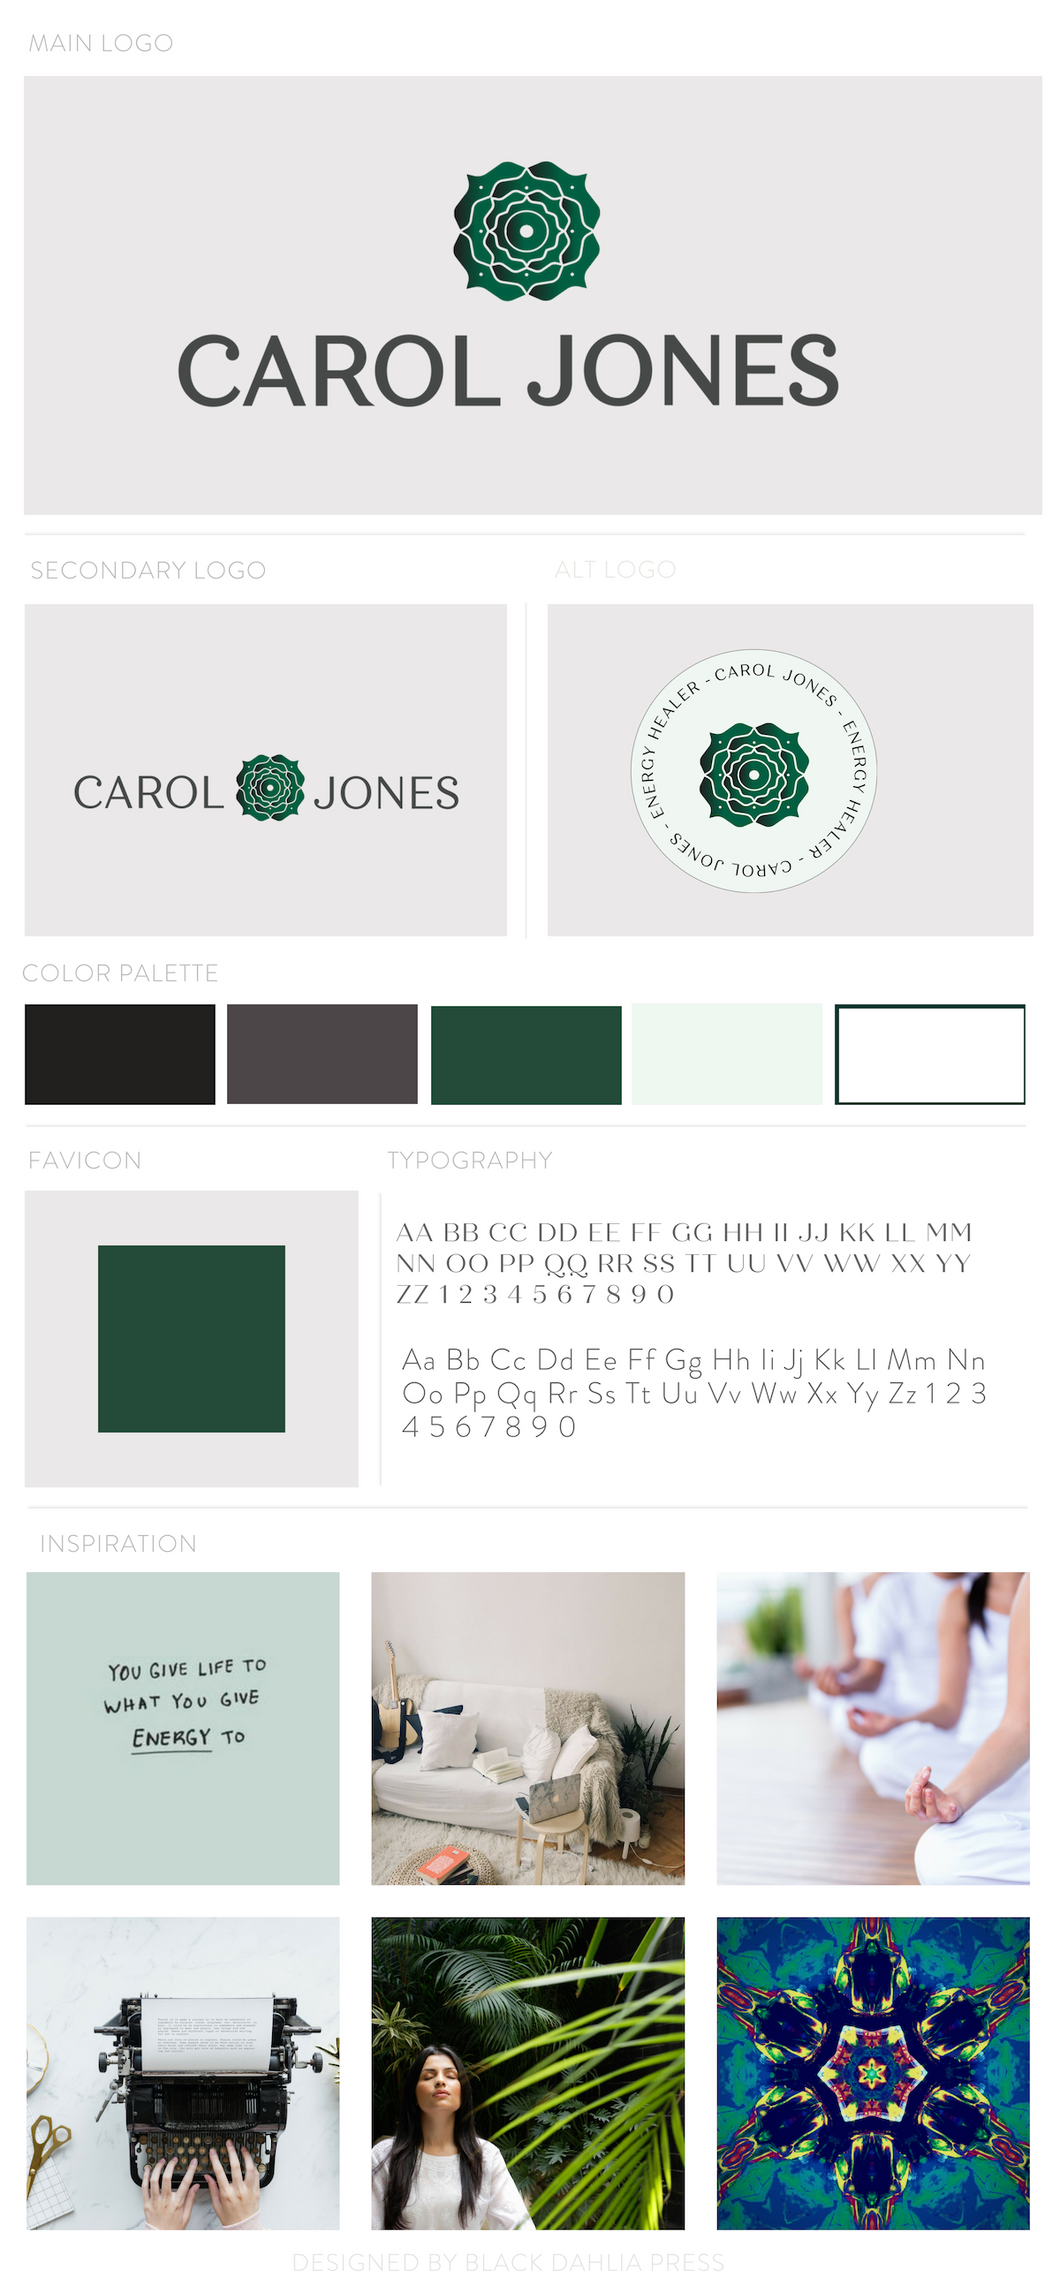 Carol Jones Pre-made Brand